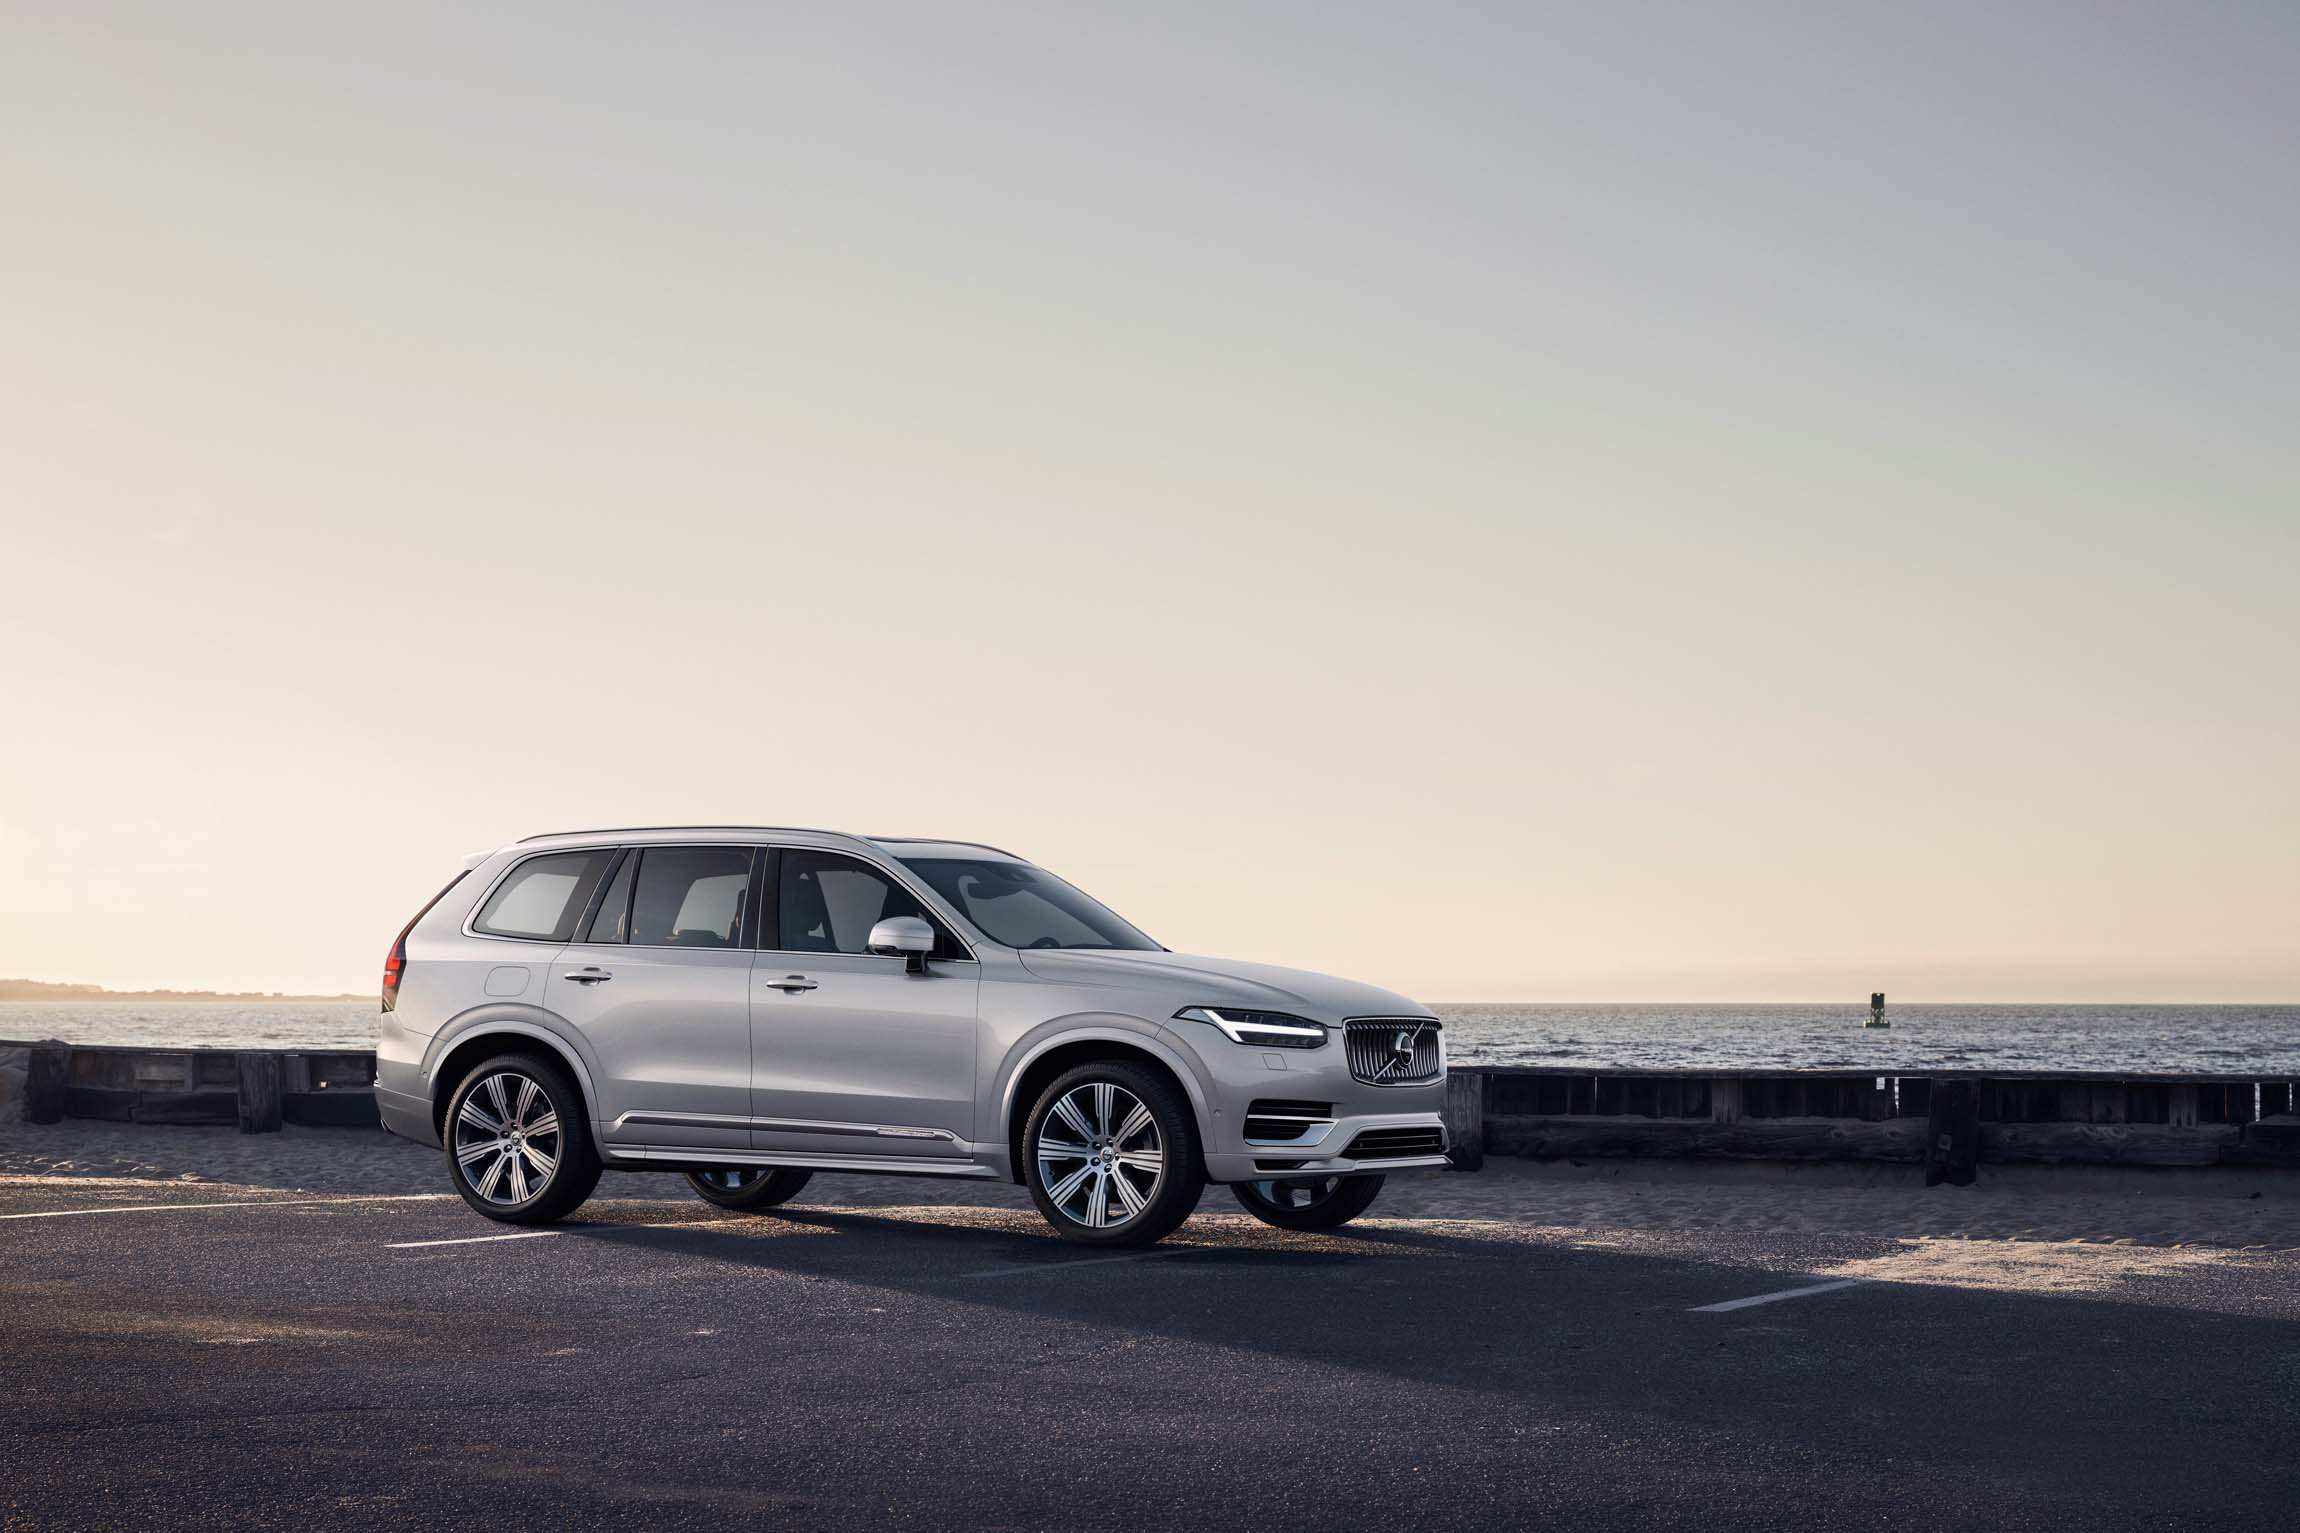 71 All New When Does 2020 Volvo Xc90 Come Out Spy Shoot